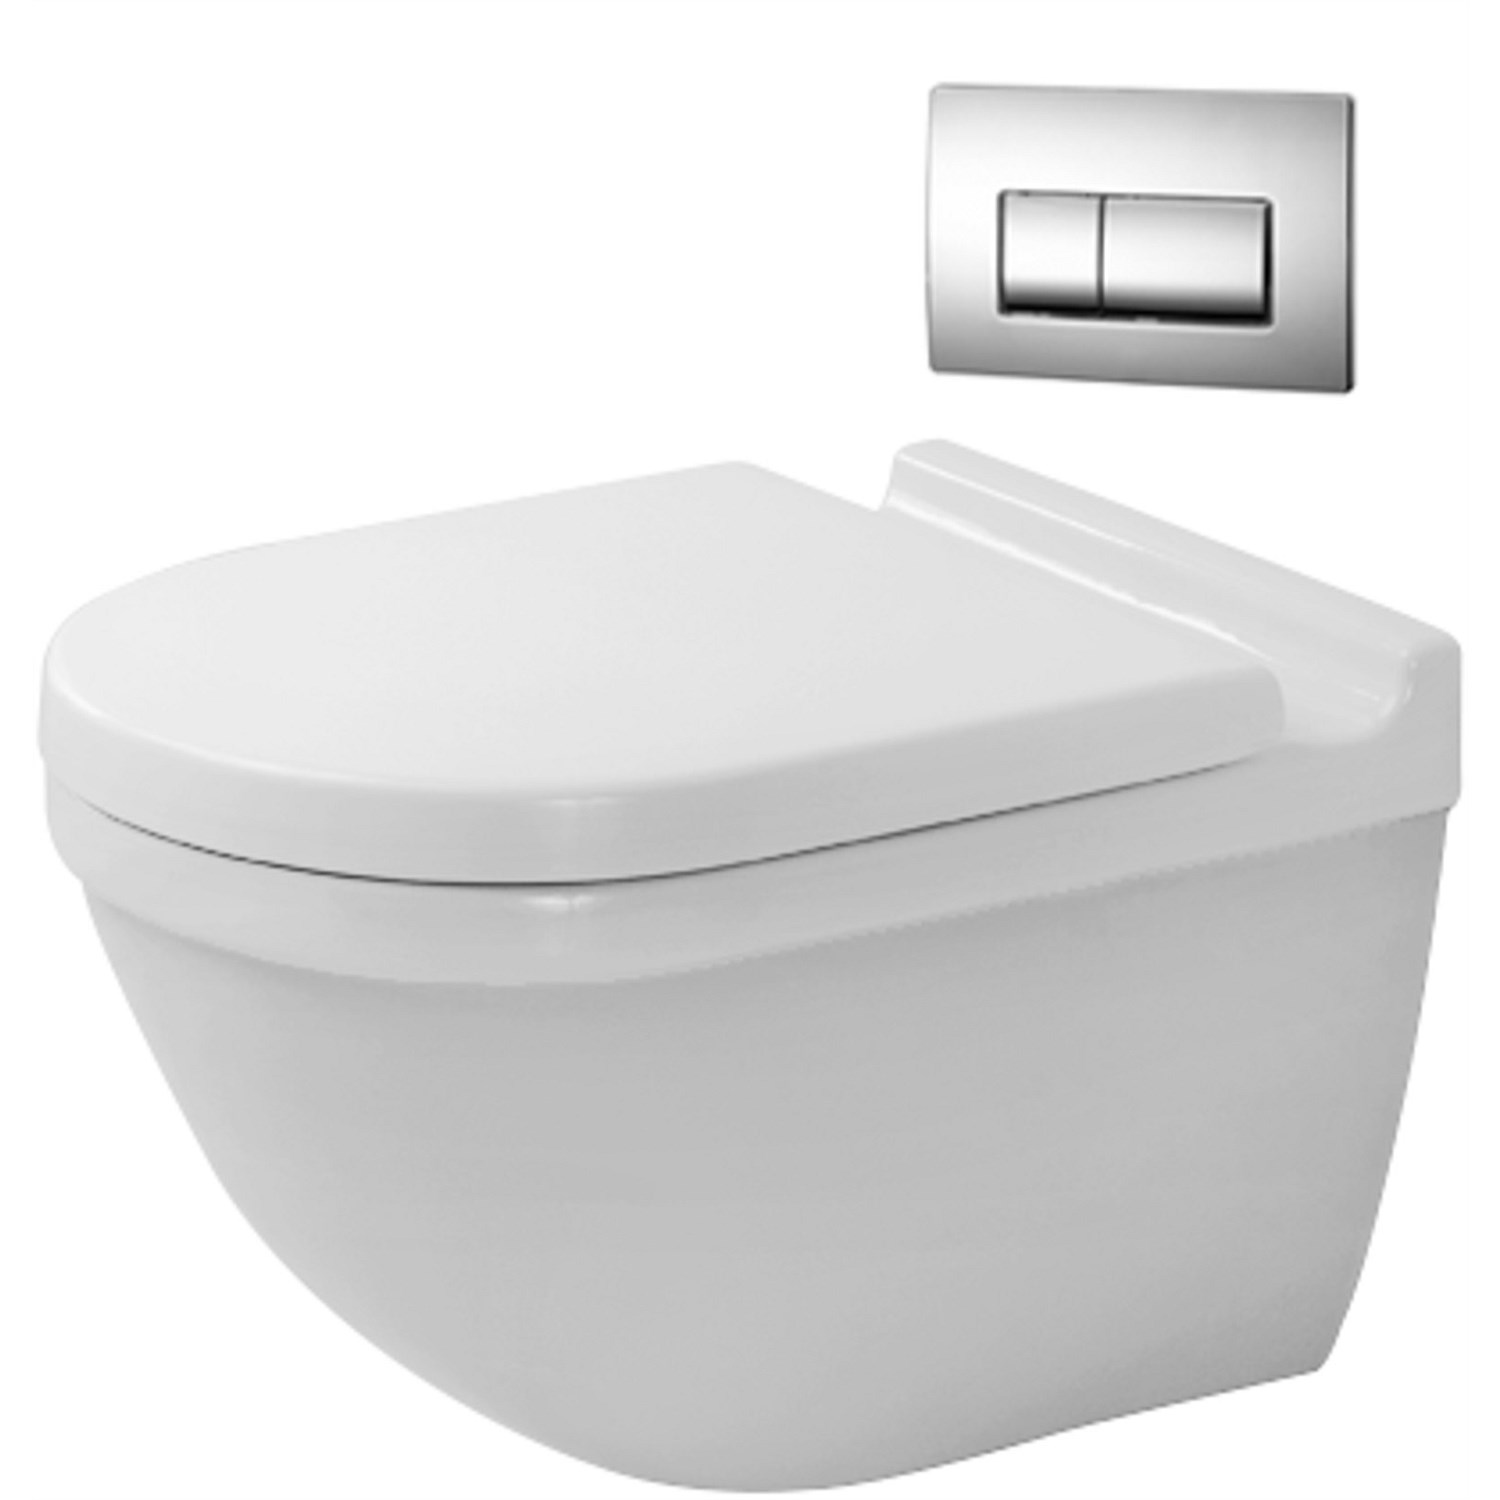 Duravit Starck 3 Wall Hung Toilet Suite